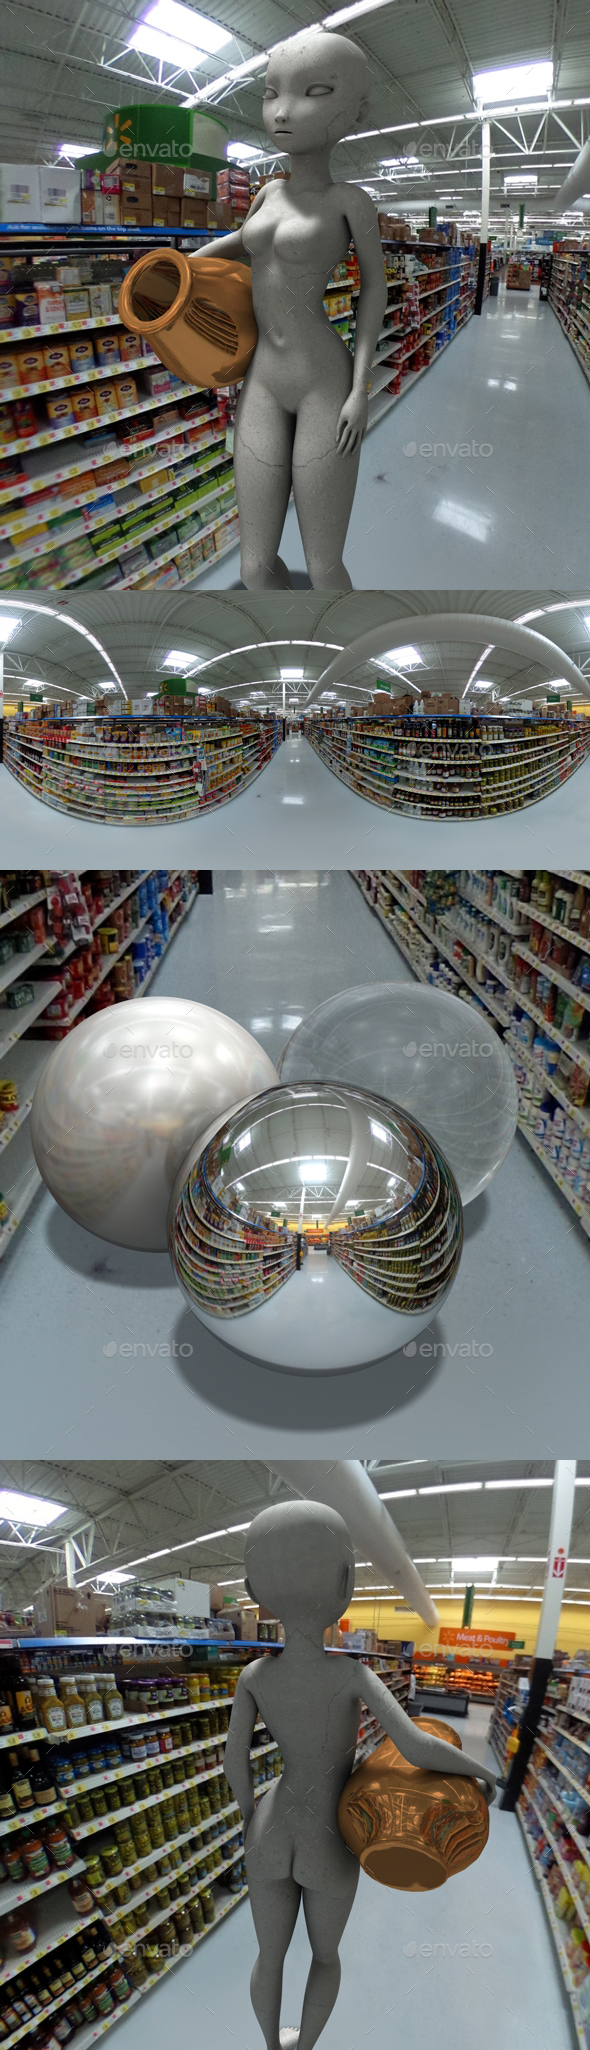 Supermarket HDRI - 3DOcean Item for Sale